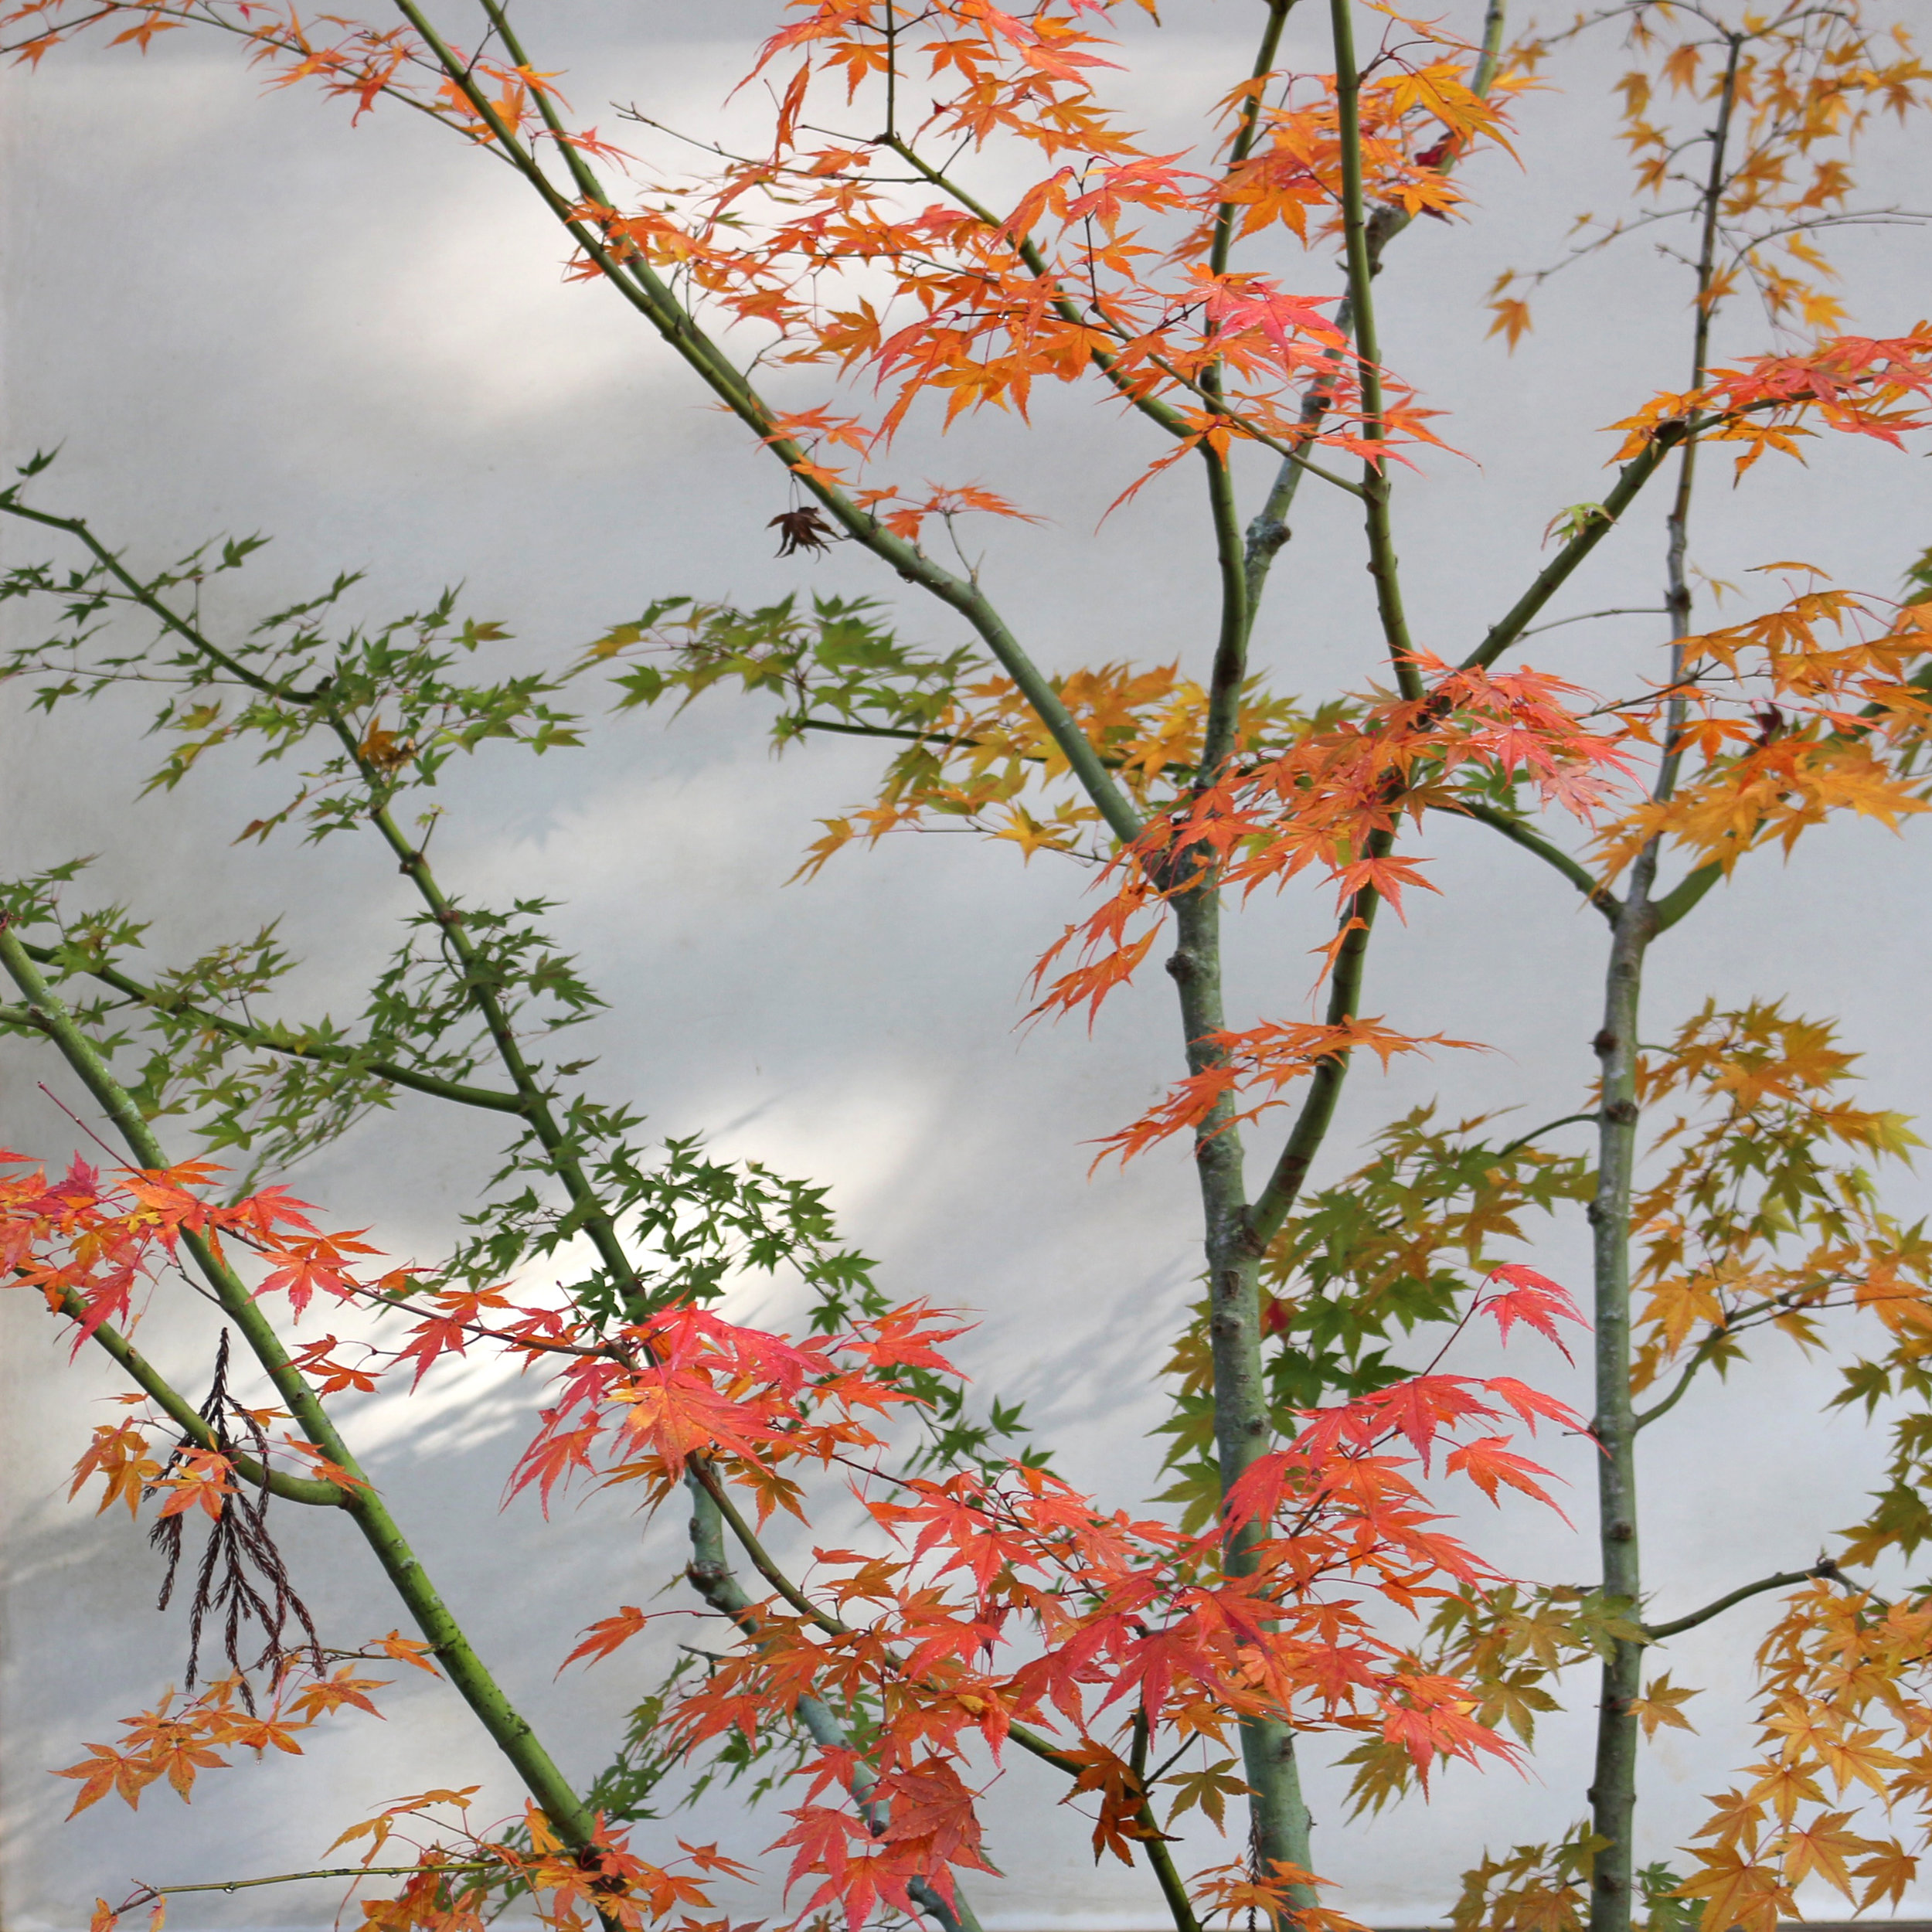 Japanese Autumn leaves. Photo by Lindsay McDonagh